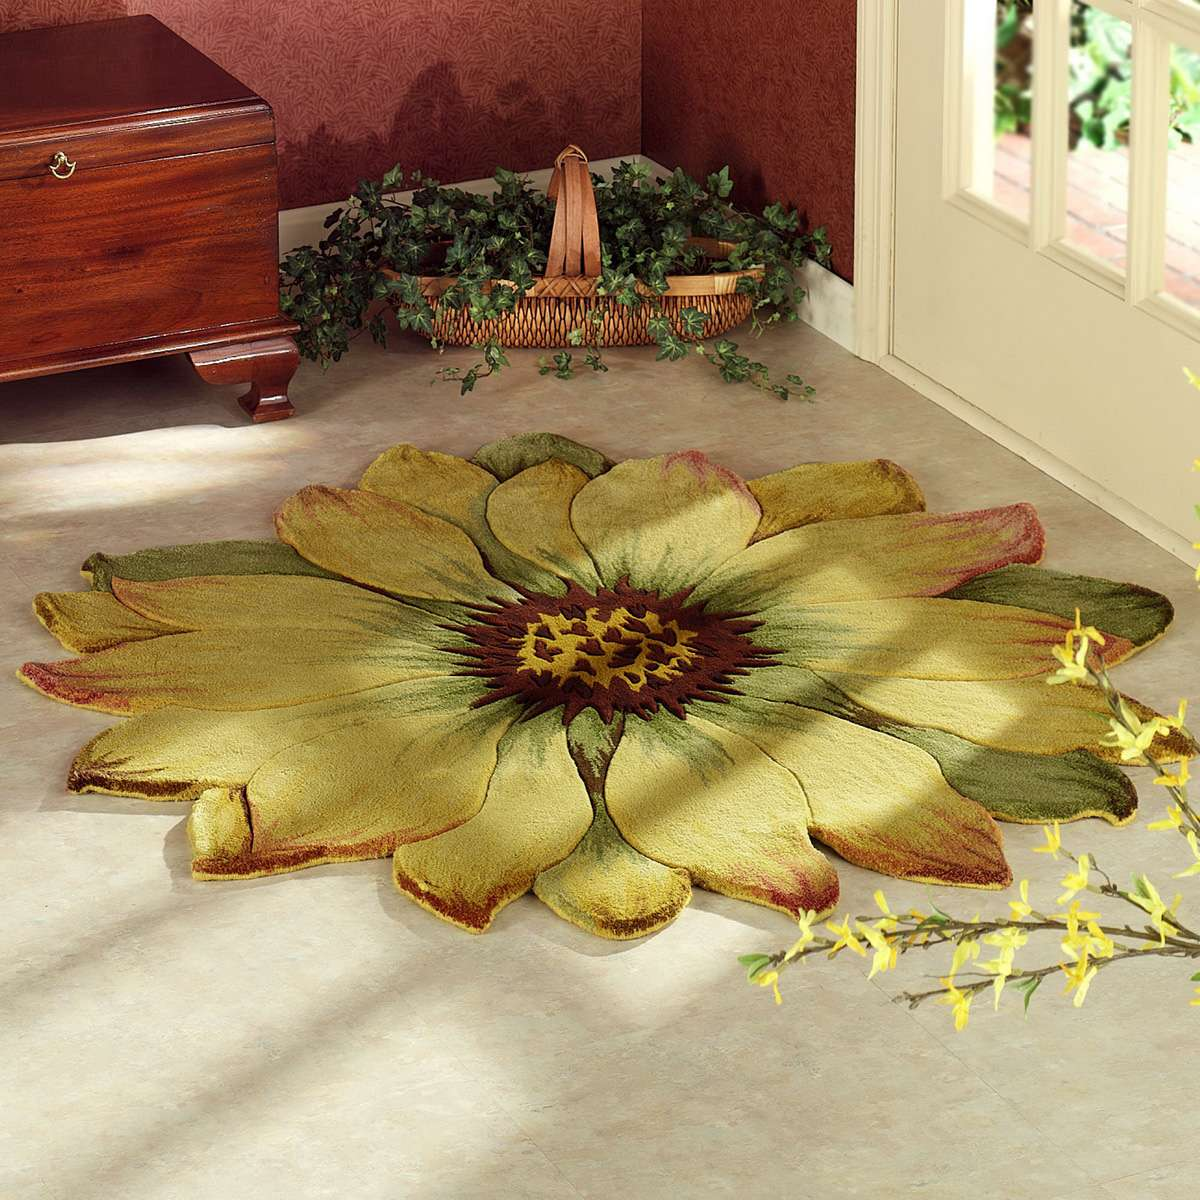 contemporary rug ideas to ornament your floors   mozaico blog